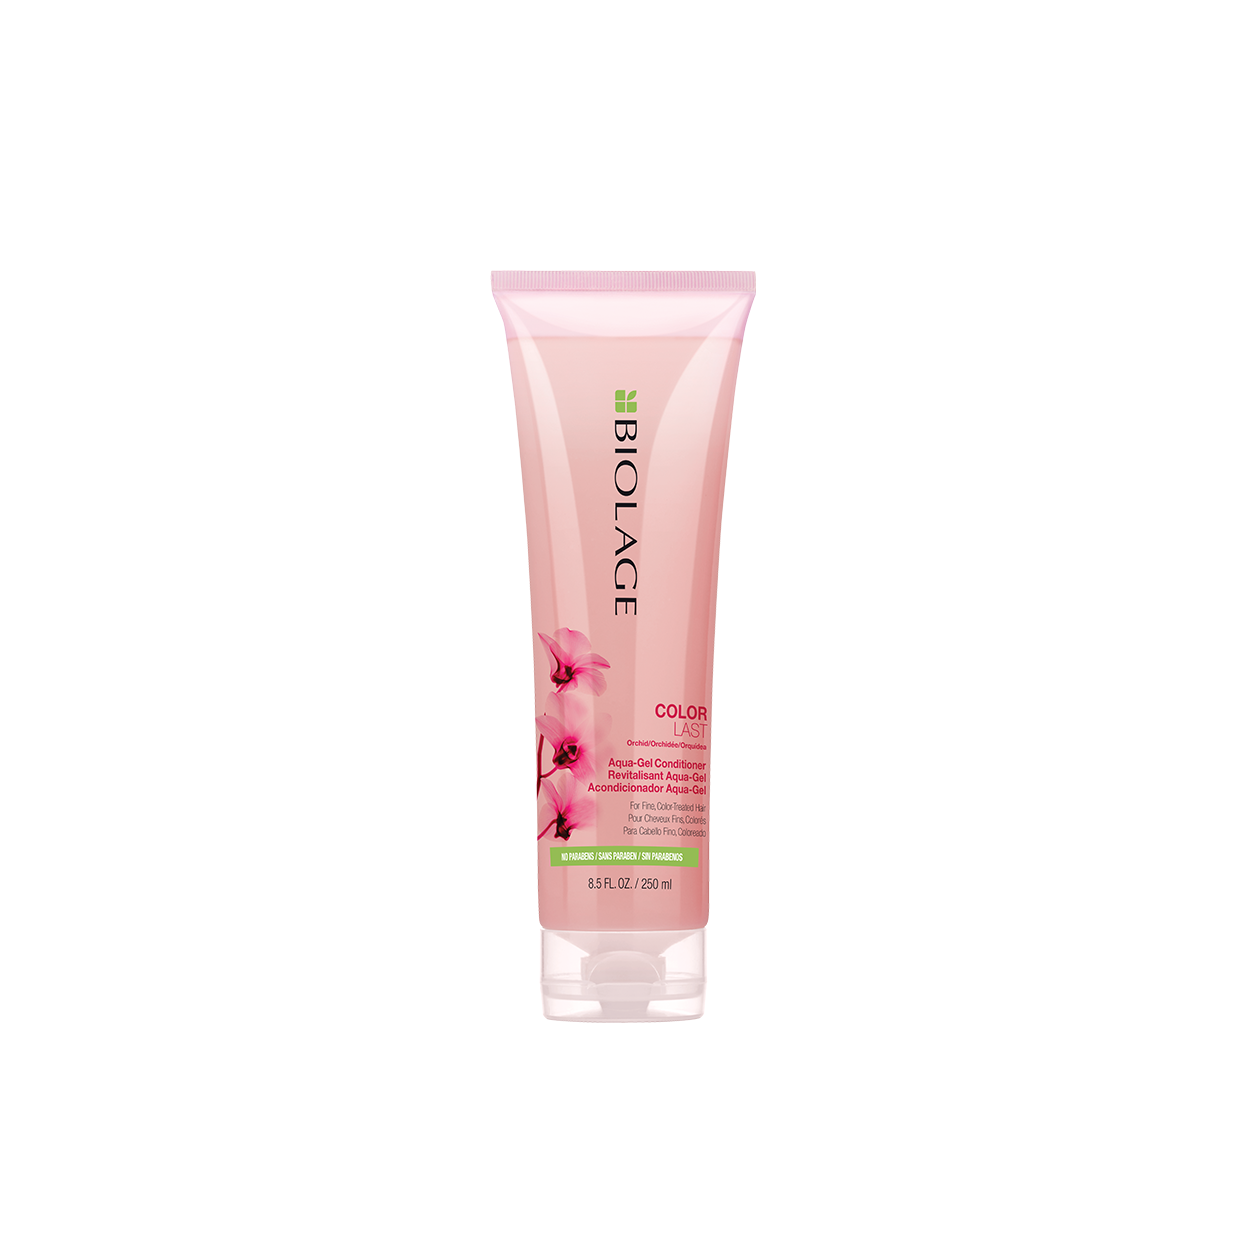 Biolage ColorLast AquaGelee Hair Gel Conditioner for Coloured Hair